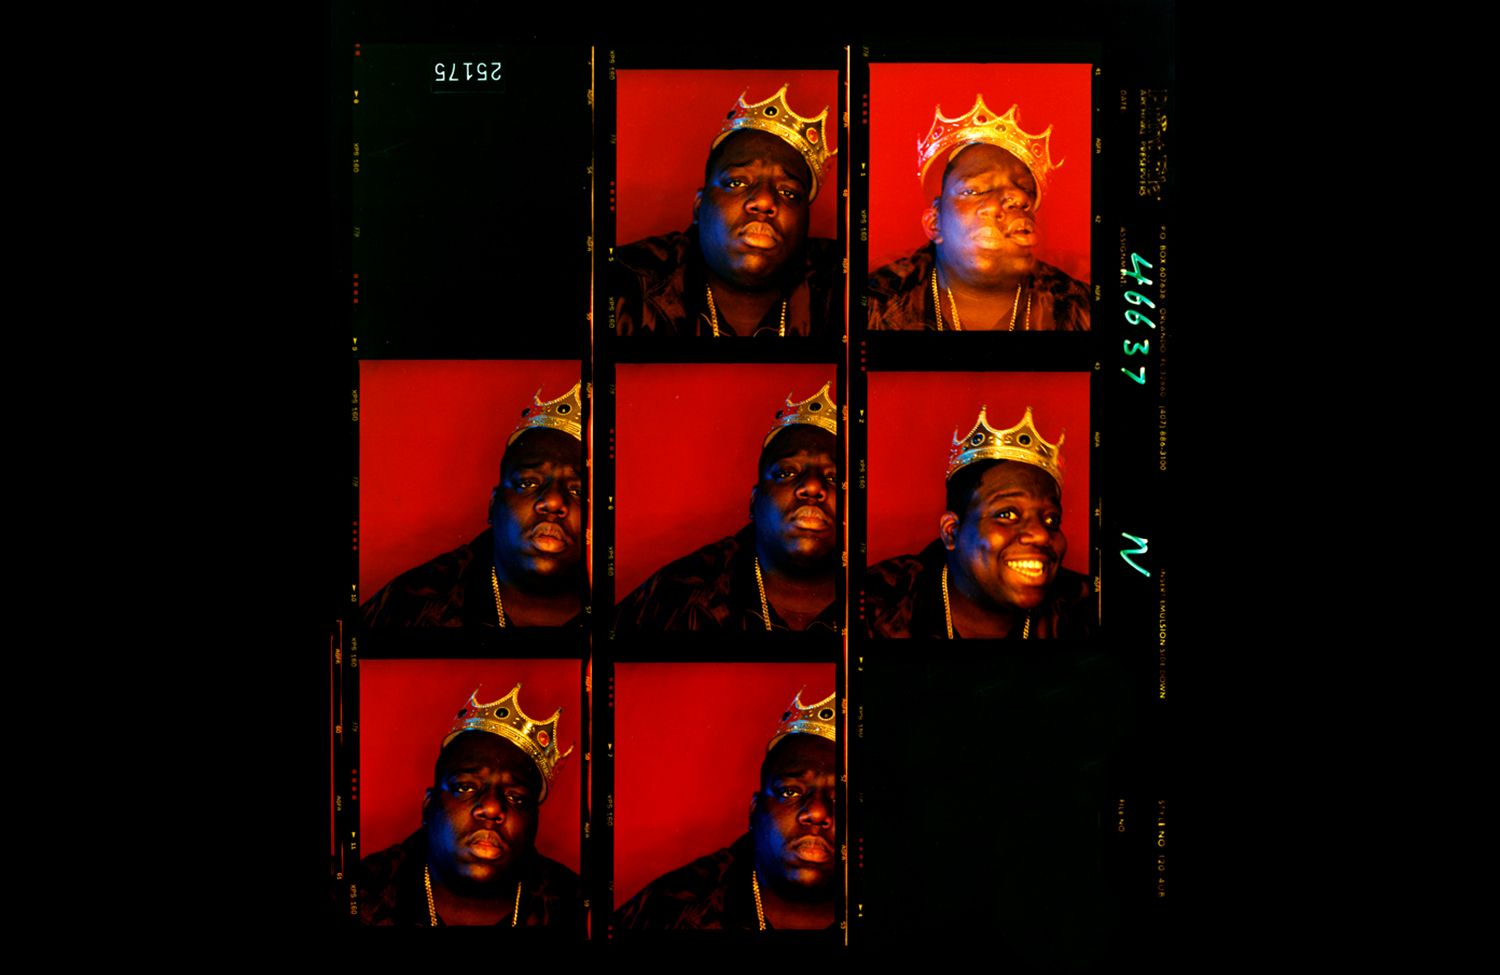 3. Biggie Smalls, King of New York contact sheet (1997). Photo by Barron Claiborne.